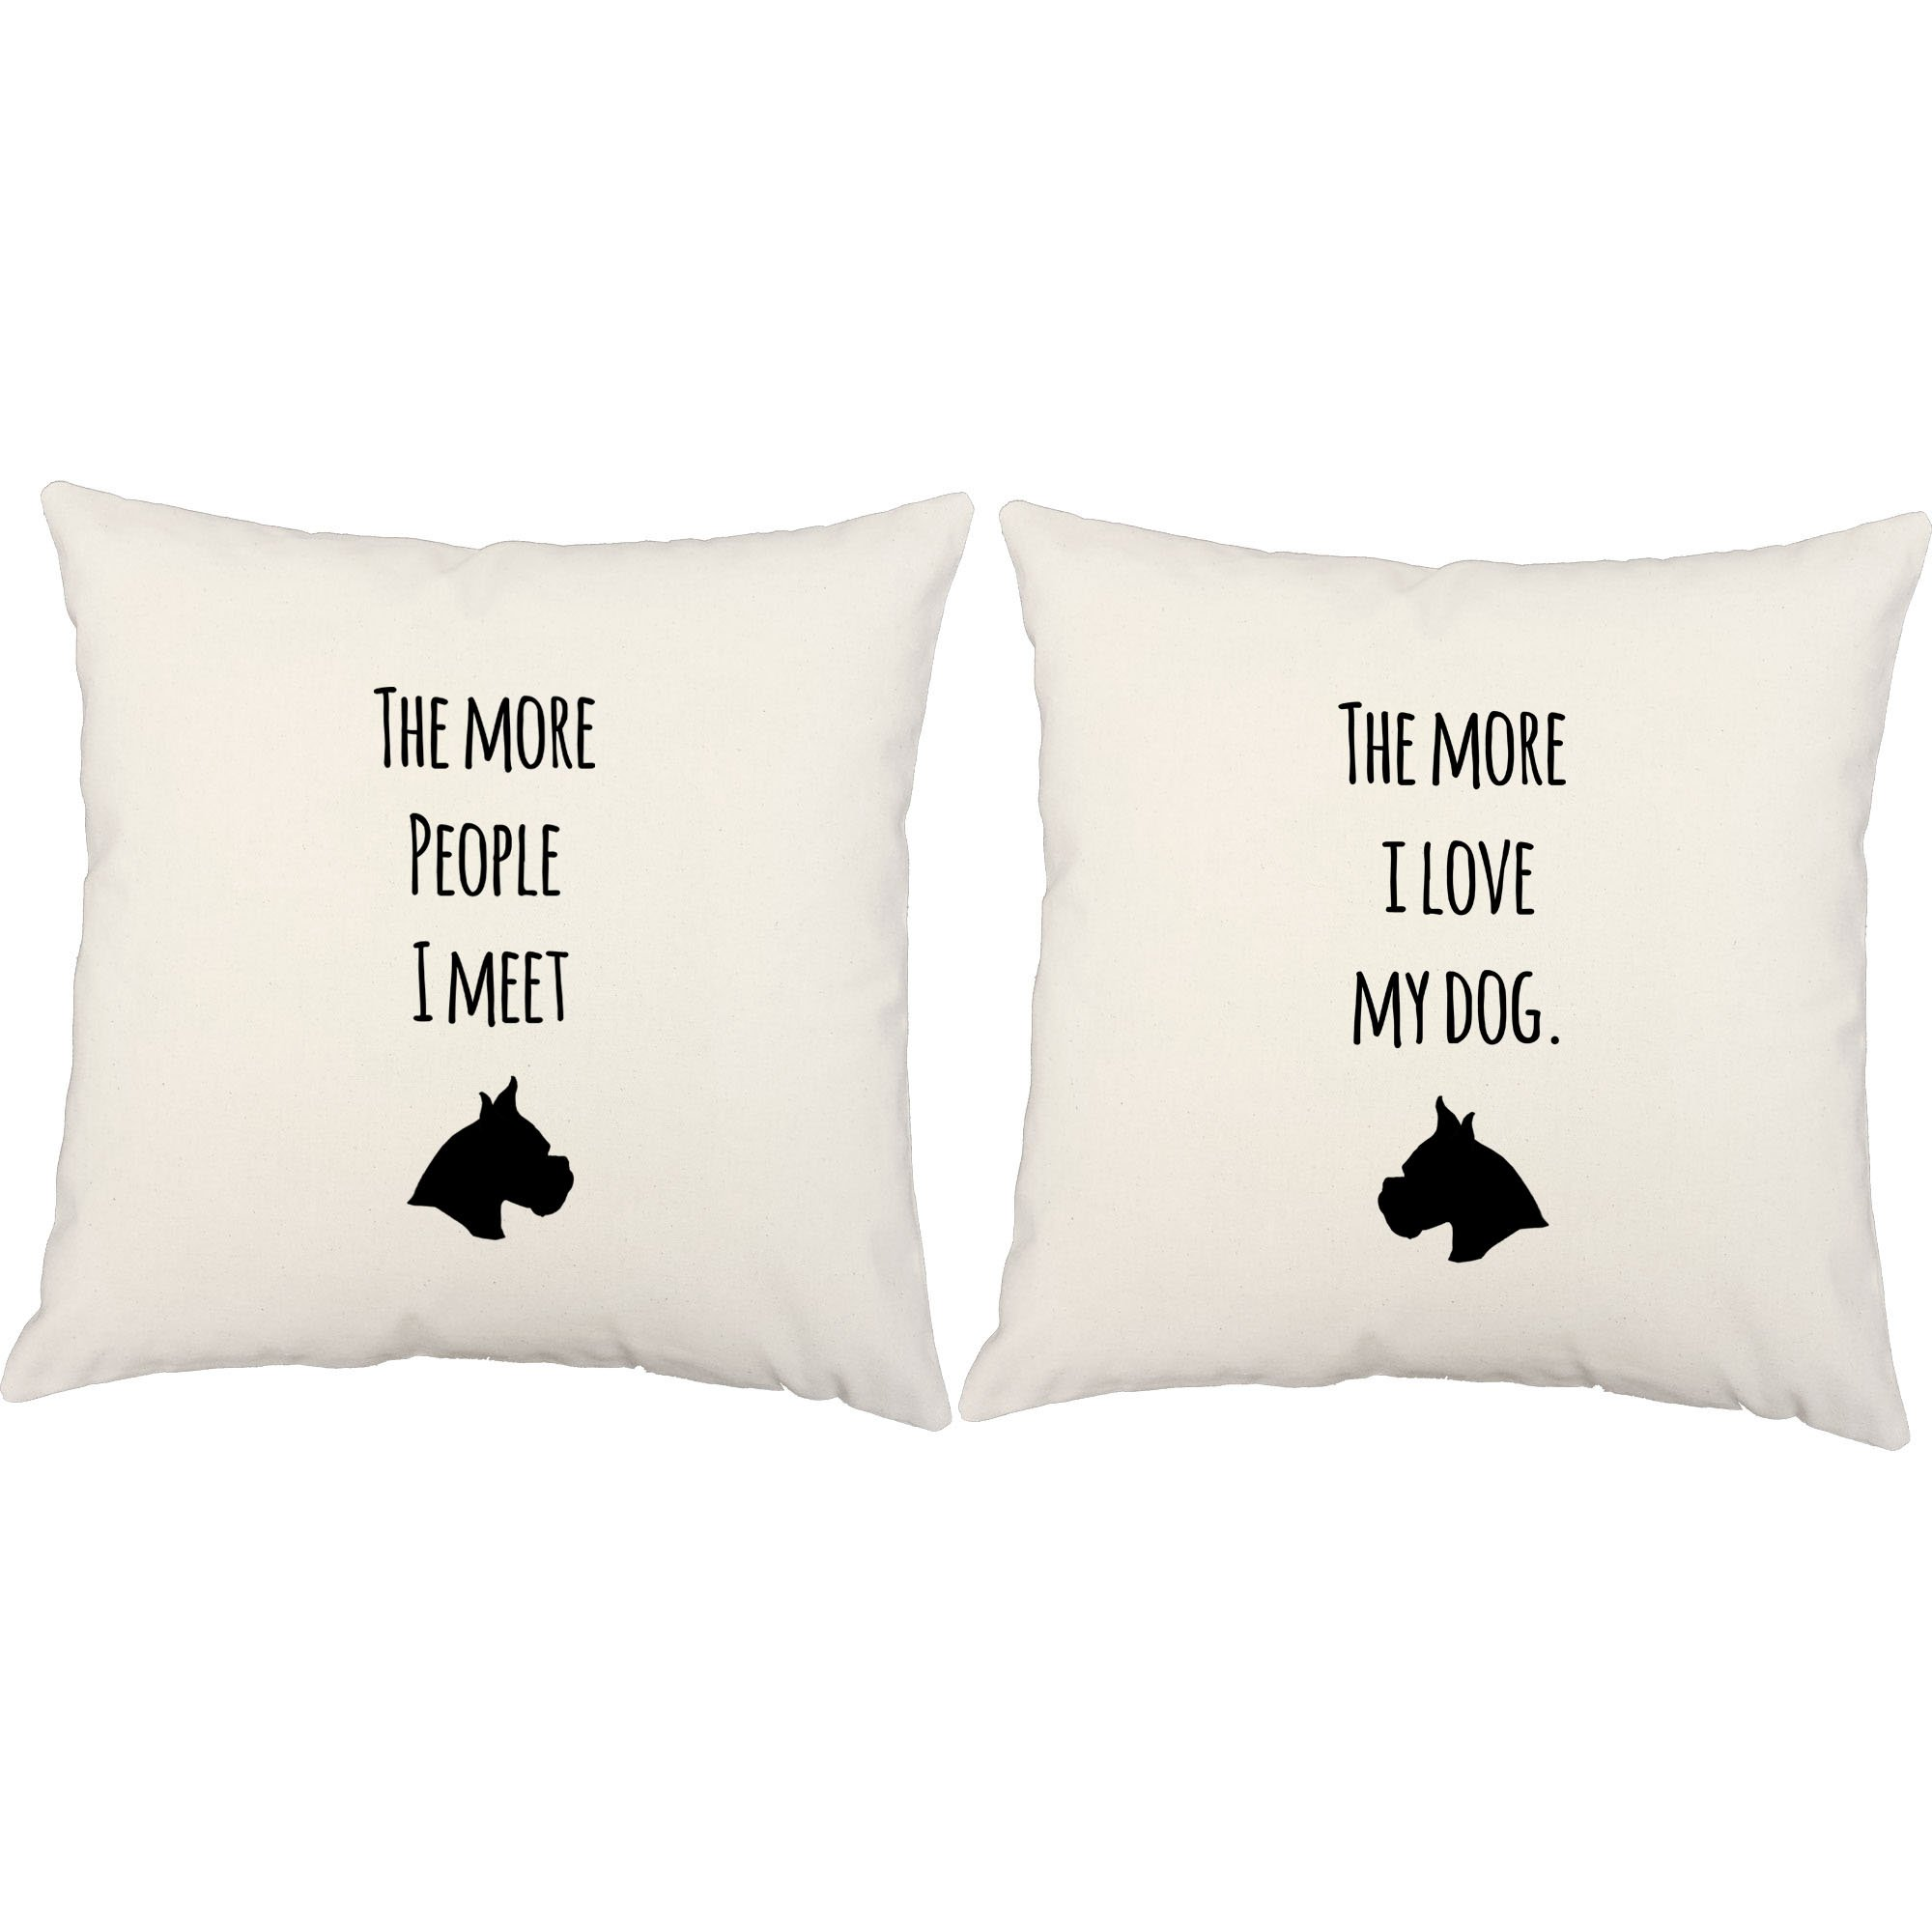 Set of 2 RoomCraft I Love My Dog Throw Pillows 20x20 Inch Square White Outdoor Cushions